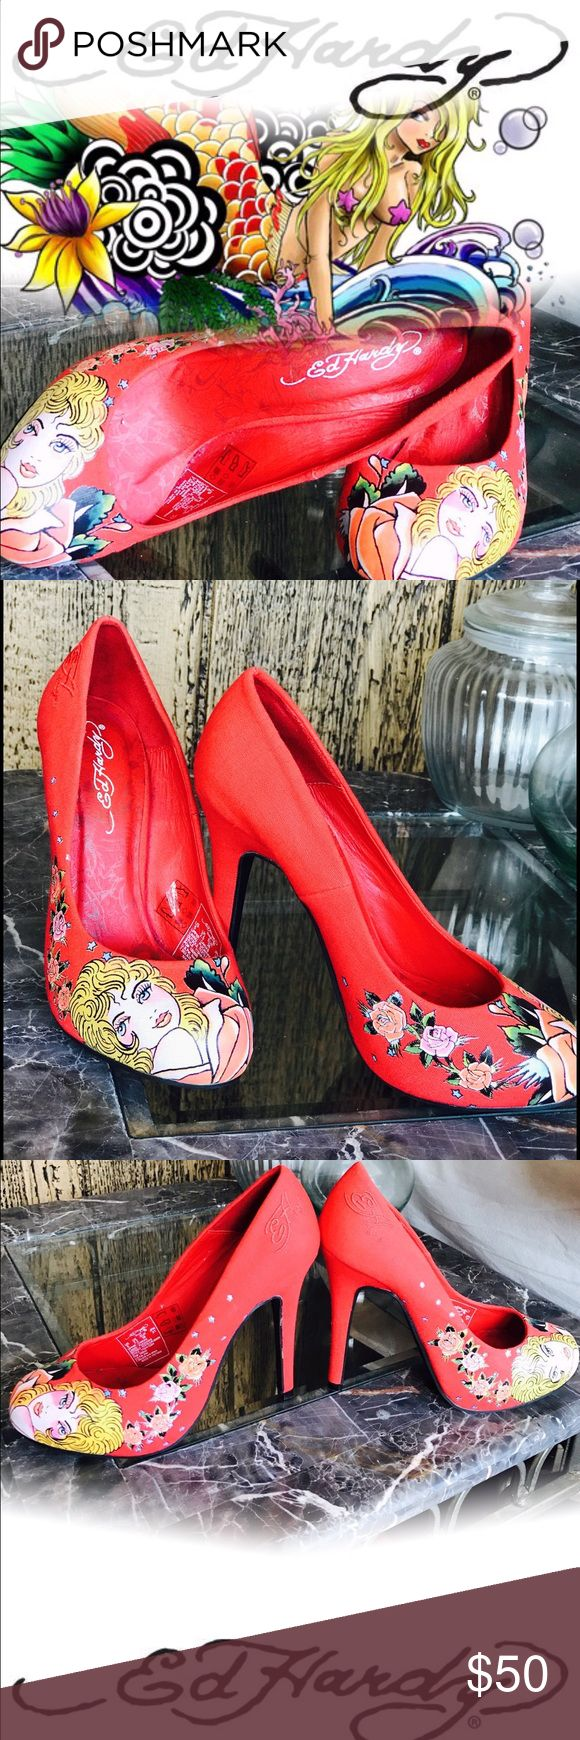 Ed Hardy shoes Authentic! Beautiful! wearable work of art! Shoe is covered with Intricate detailing . Featuring graphics by famous tattoo artist  Ed Hardy. Its  very pretty red  new without tags . Pumps with stiletto  heels round toe. Size 5 Ed Hardy Shoes Heels